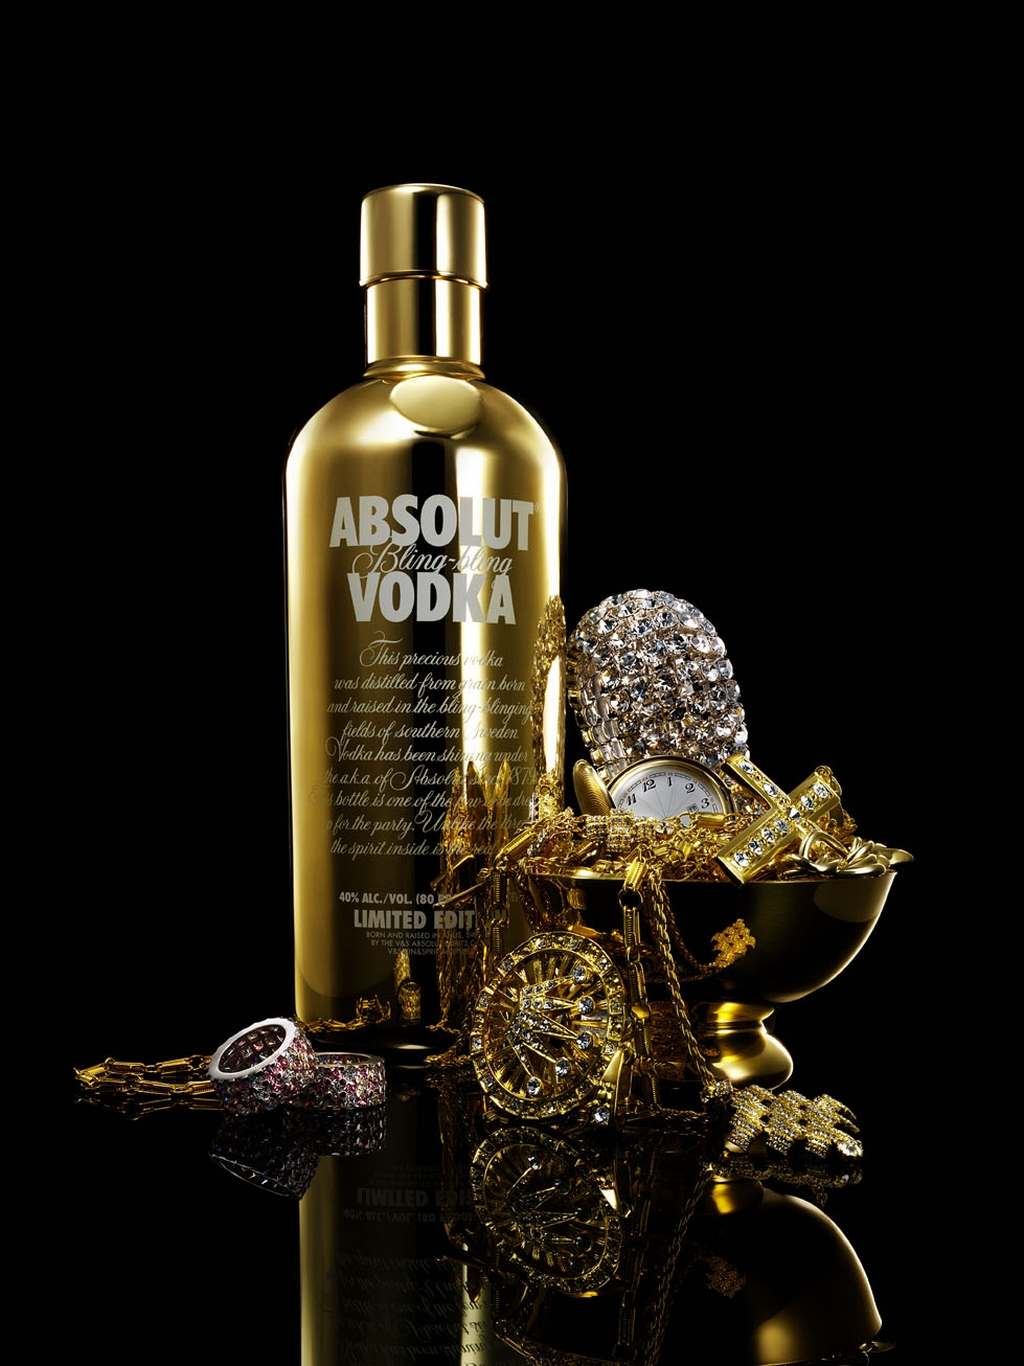 30 Absolut Vodka Ads